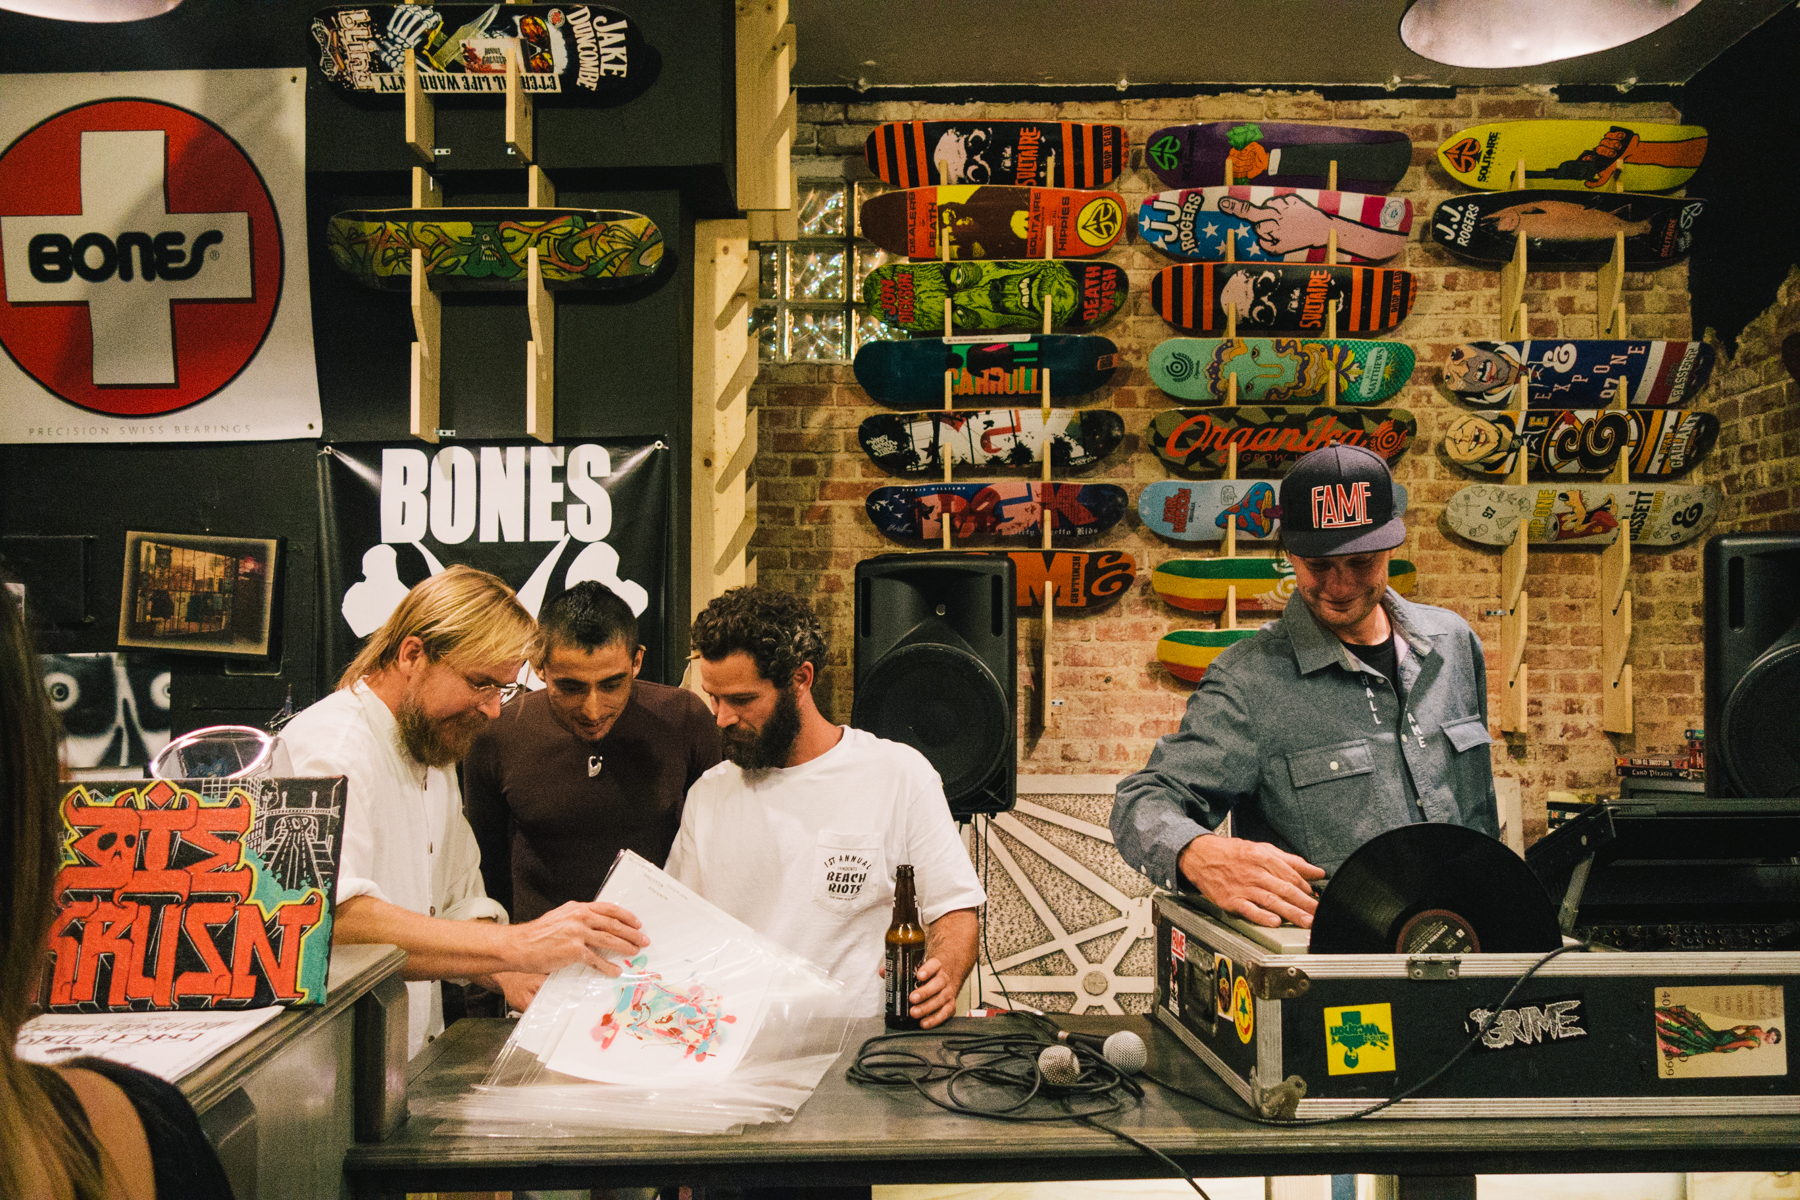 Chad Muska, Paulo Diaz, Sean Tully, and Eric Pupecki at Krusin Skate Shop. pic by MorGnar